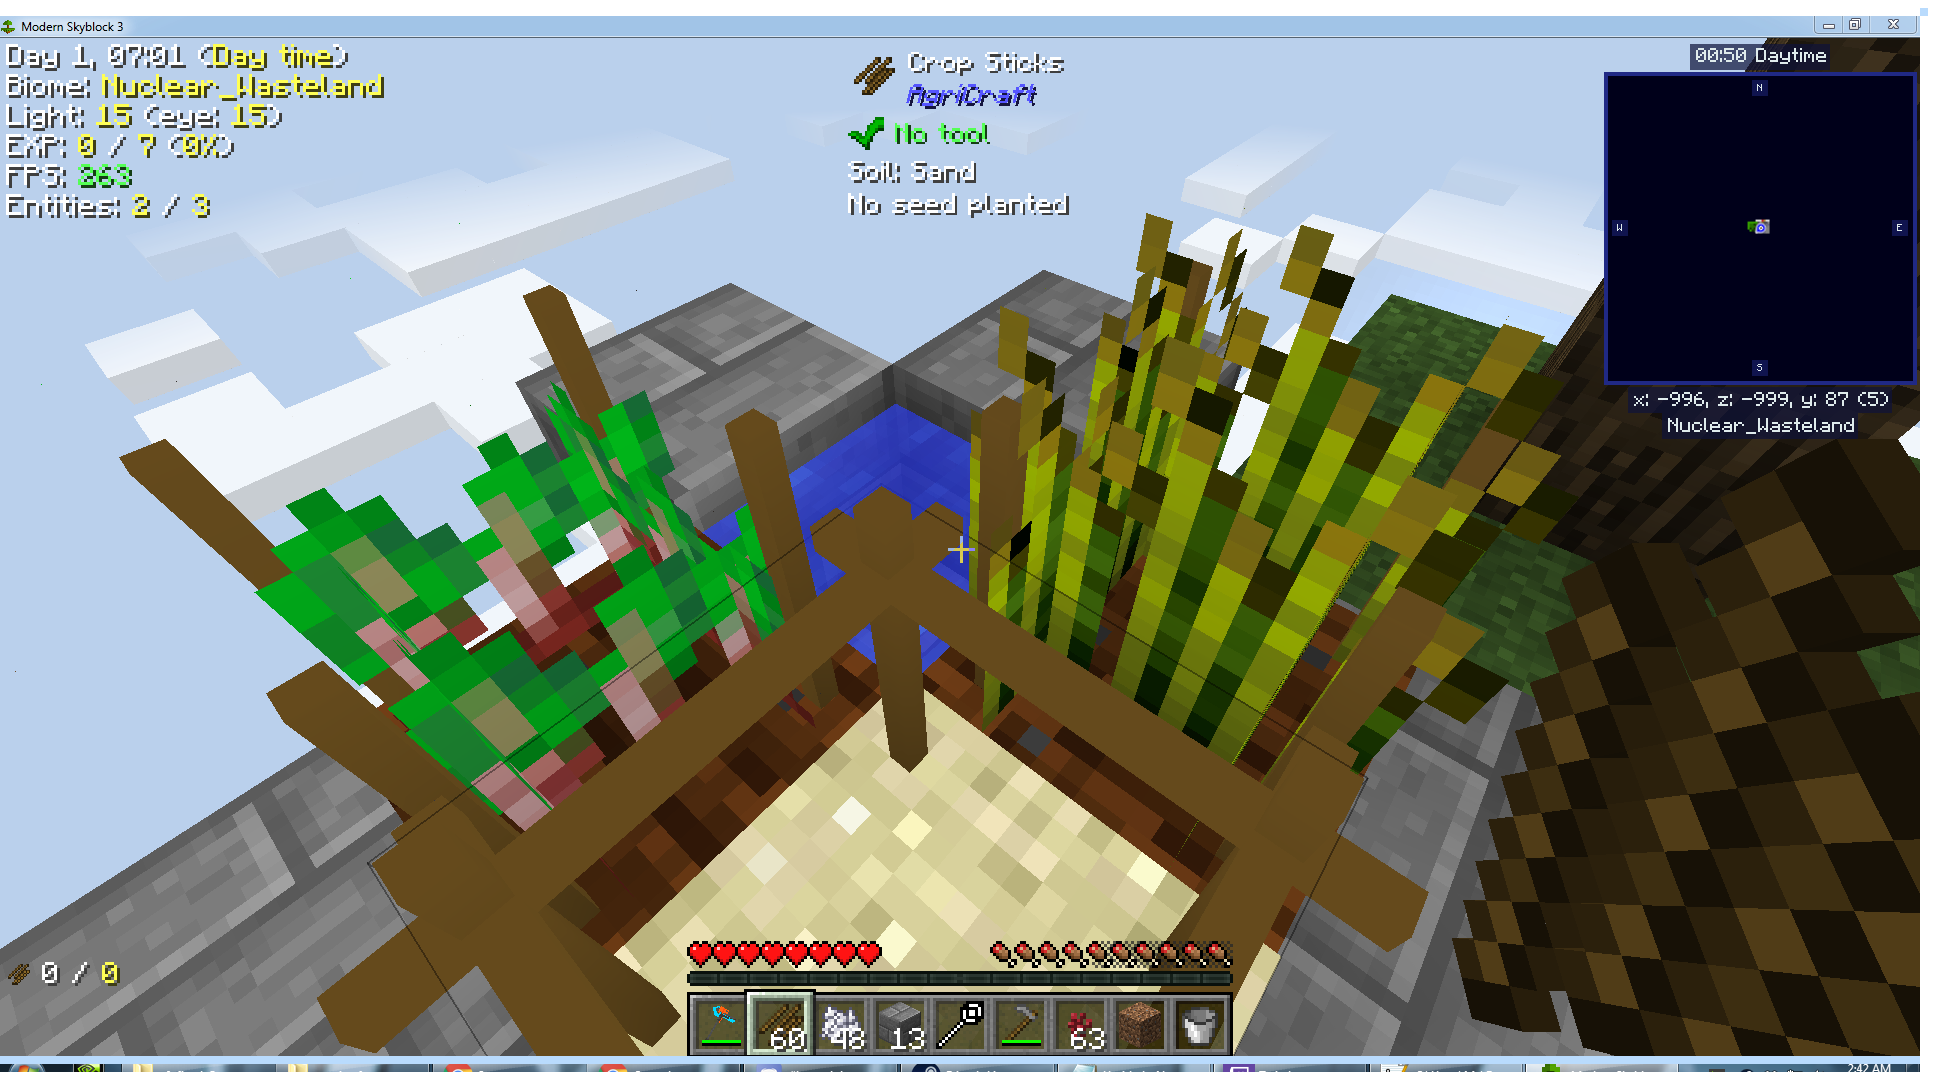 Cant place cross sticks for mutating seeds in Departed · Issue #1175